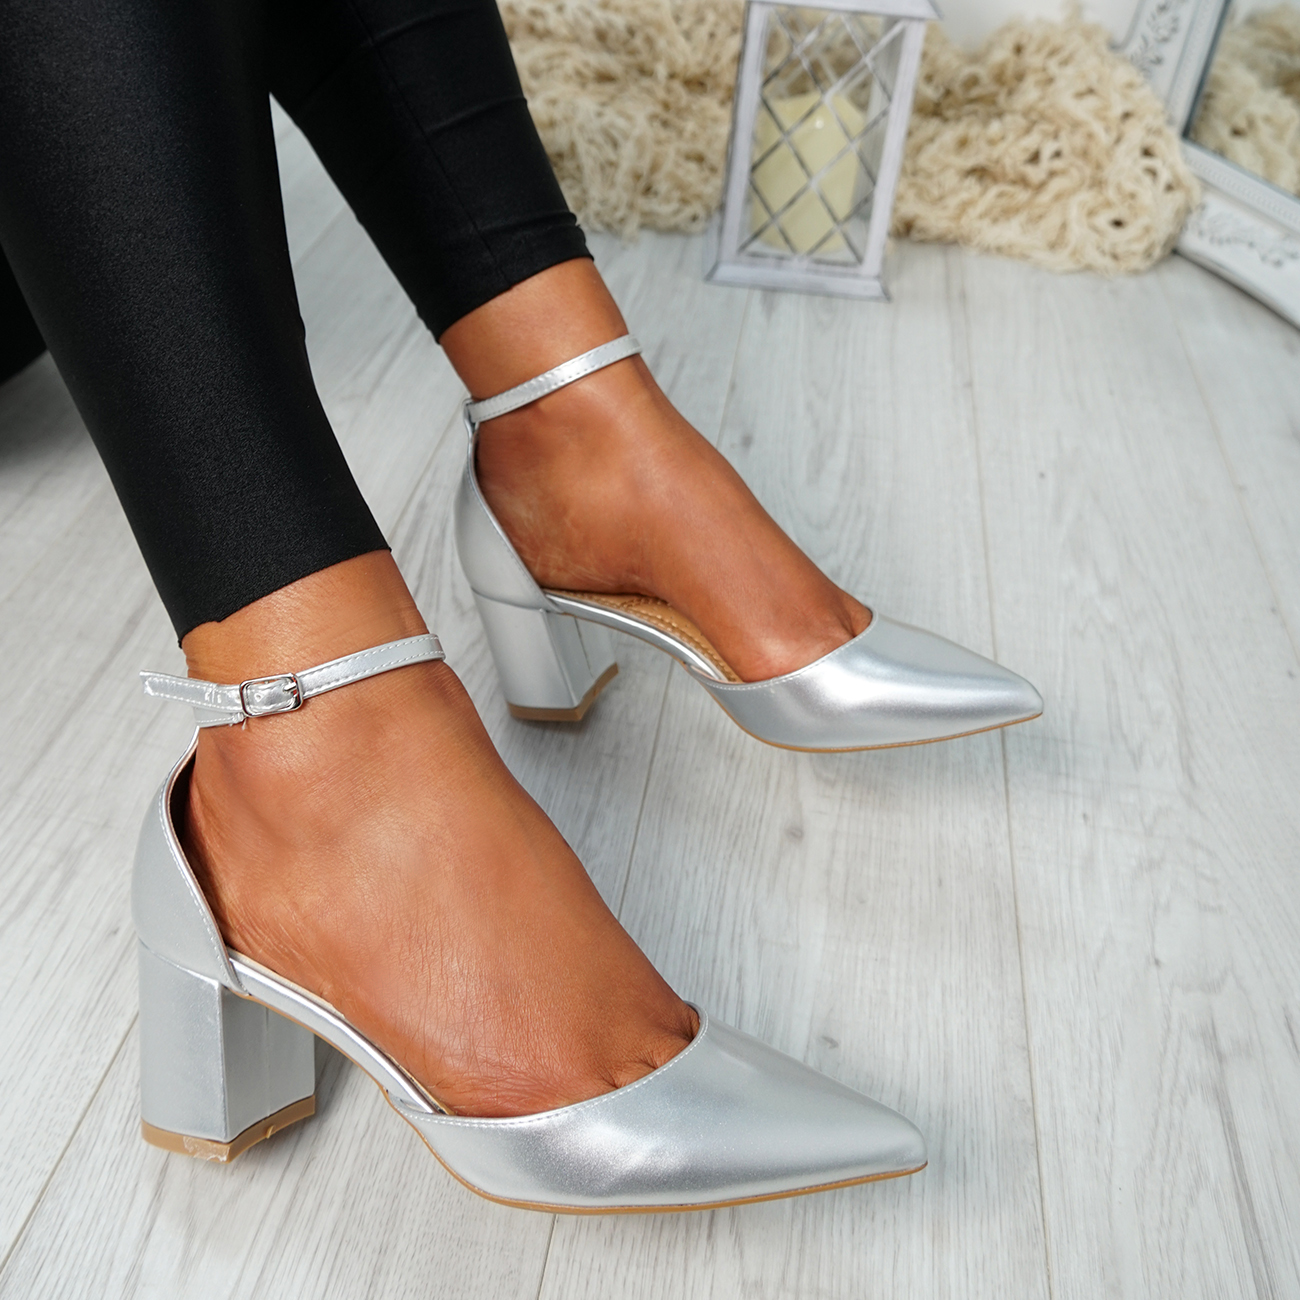 WOMENS-LADIES-ANKLE-STRAP-BLOCK-HEEL-PUMPS-POINTED-TOE-WORK-PARTY-SHOES-SIZE thumbnail 25